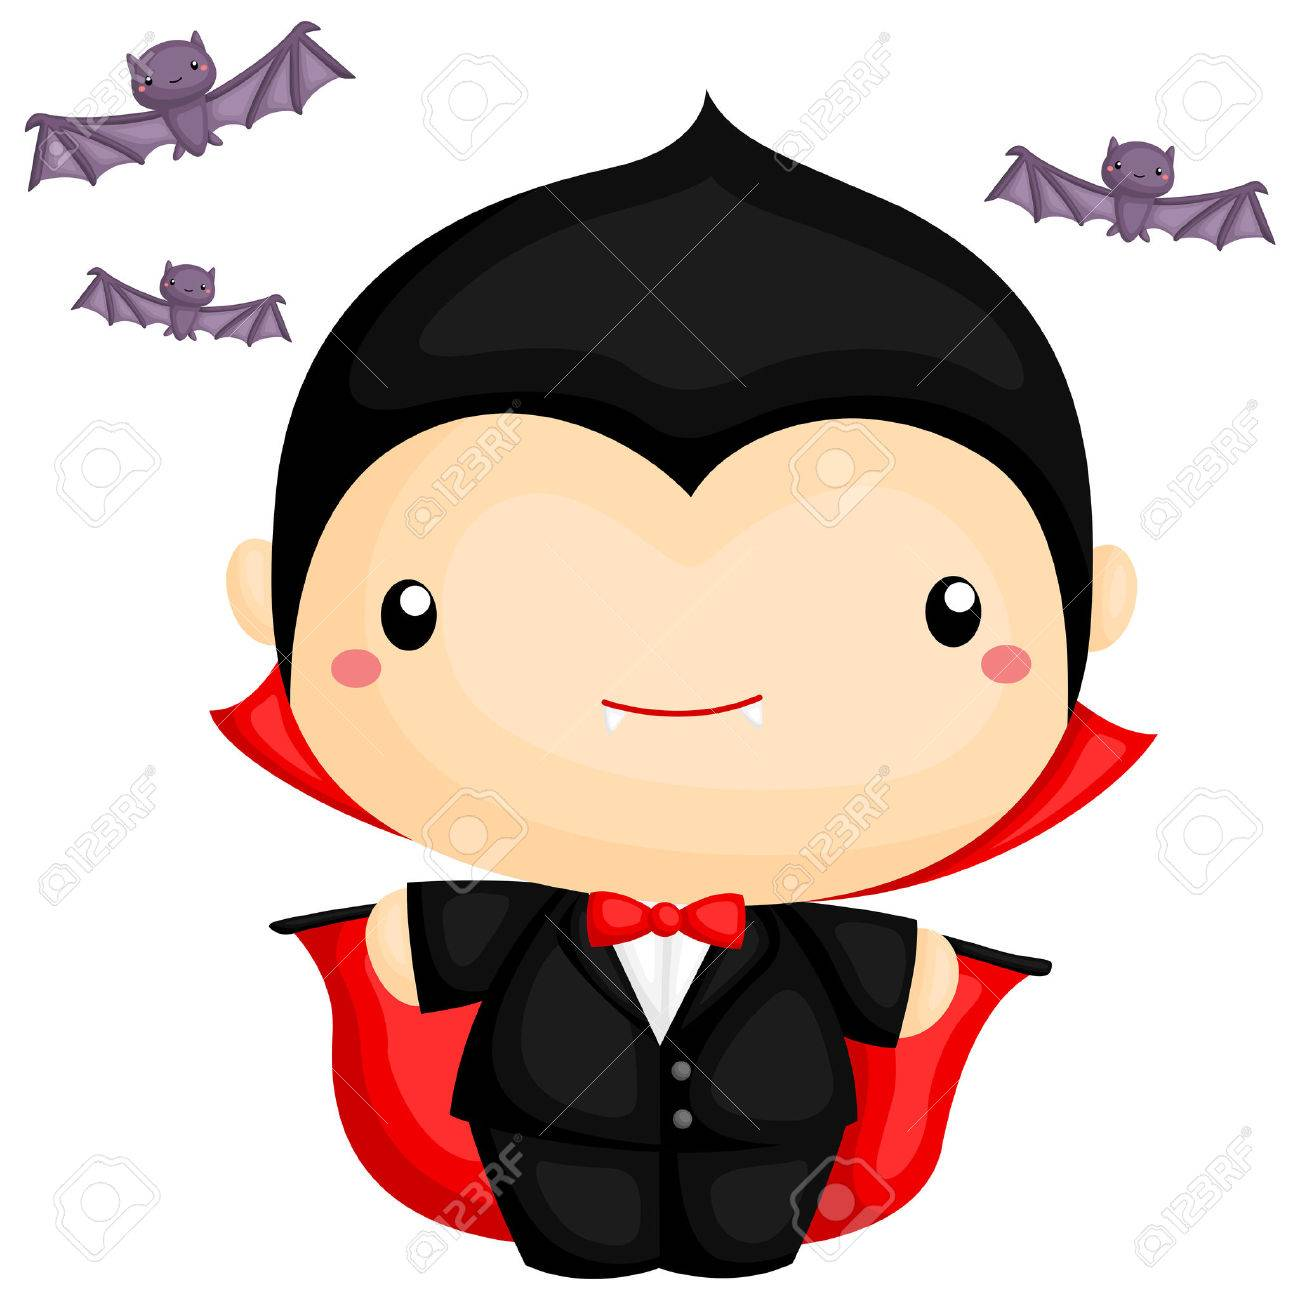 1300x1300 Cute Vampire Royalty Free Cliparts, Vectors, And Stock